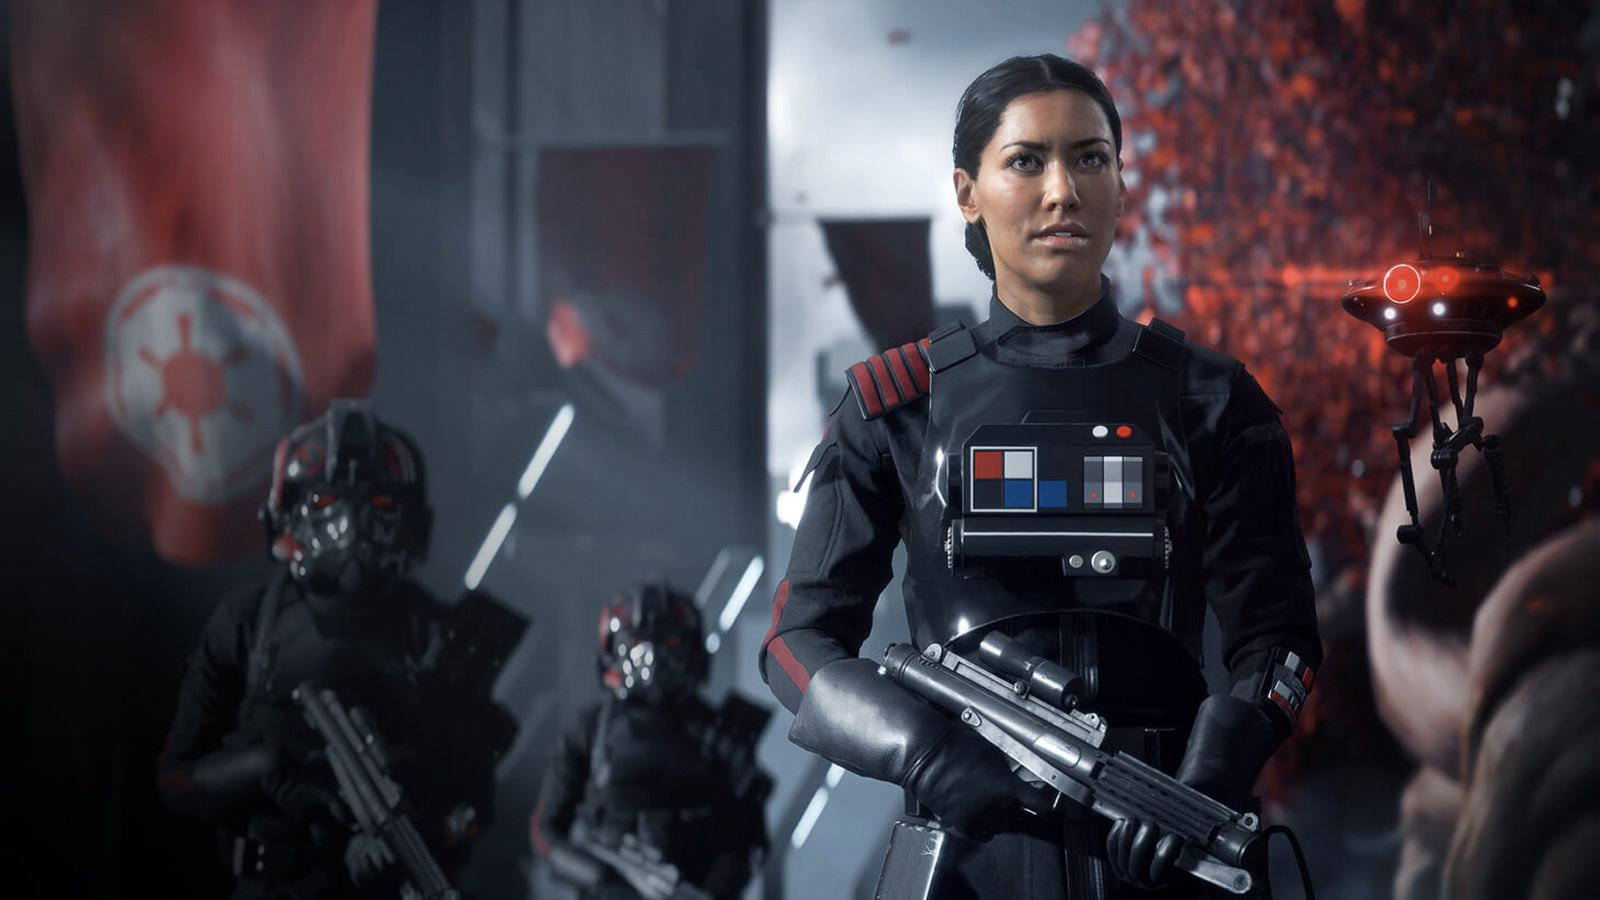 Star Wars Battlefront 2's Janina Gavankar is ready to be the new queen of E3